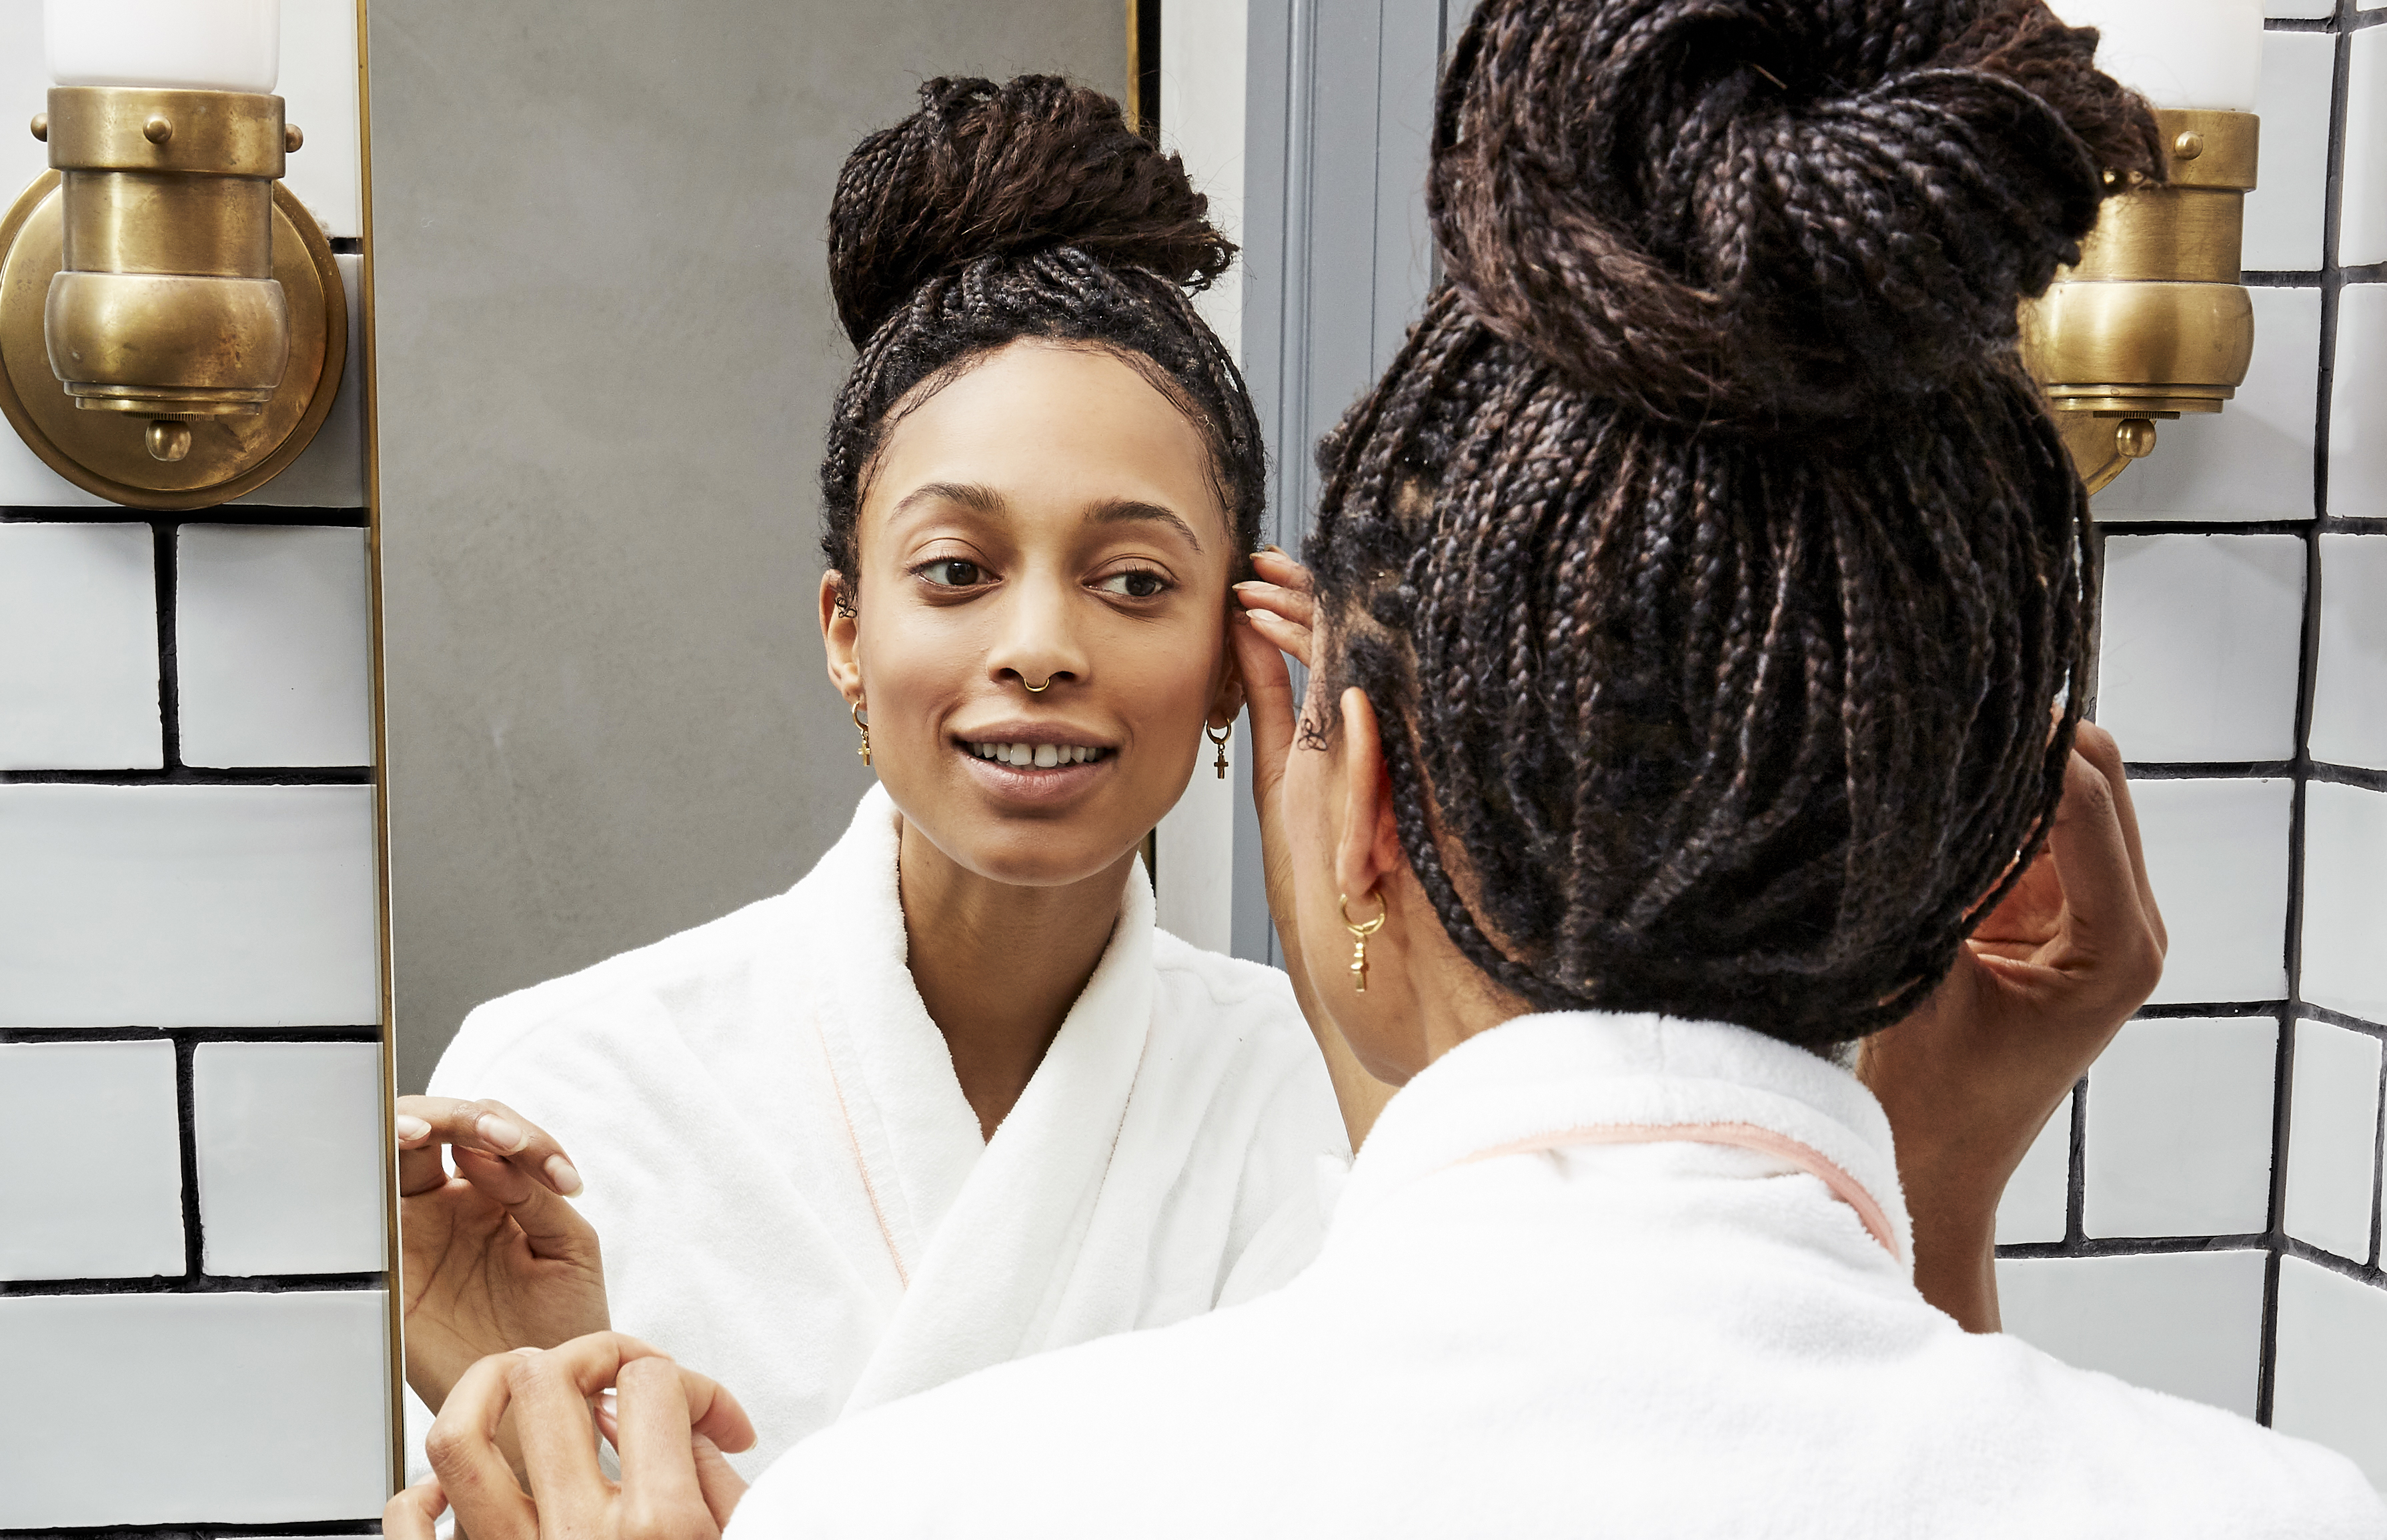 woman with braids smiles into her bathroom mirror